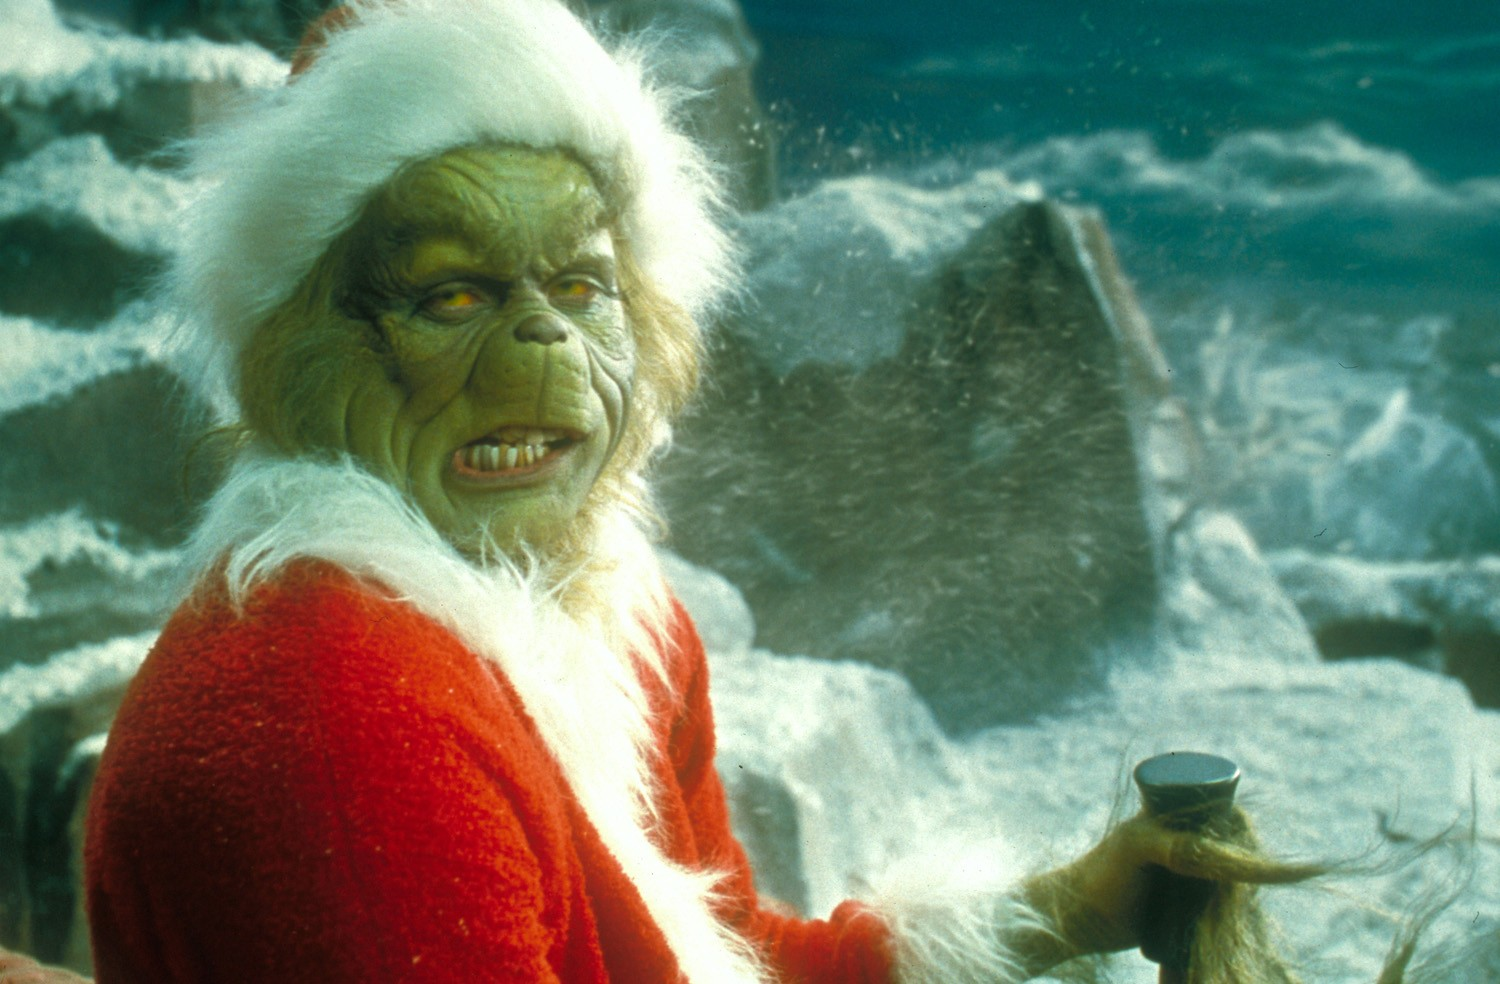 Magnificent How The Grinch Stole Christmas Movie Hd Wallpapers Easy Diy Christmas Decorations Tissureus